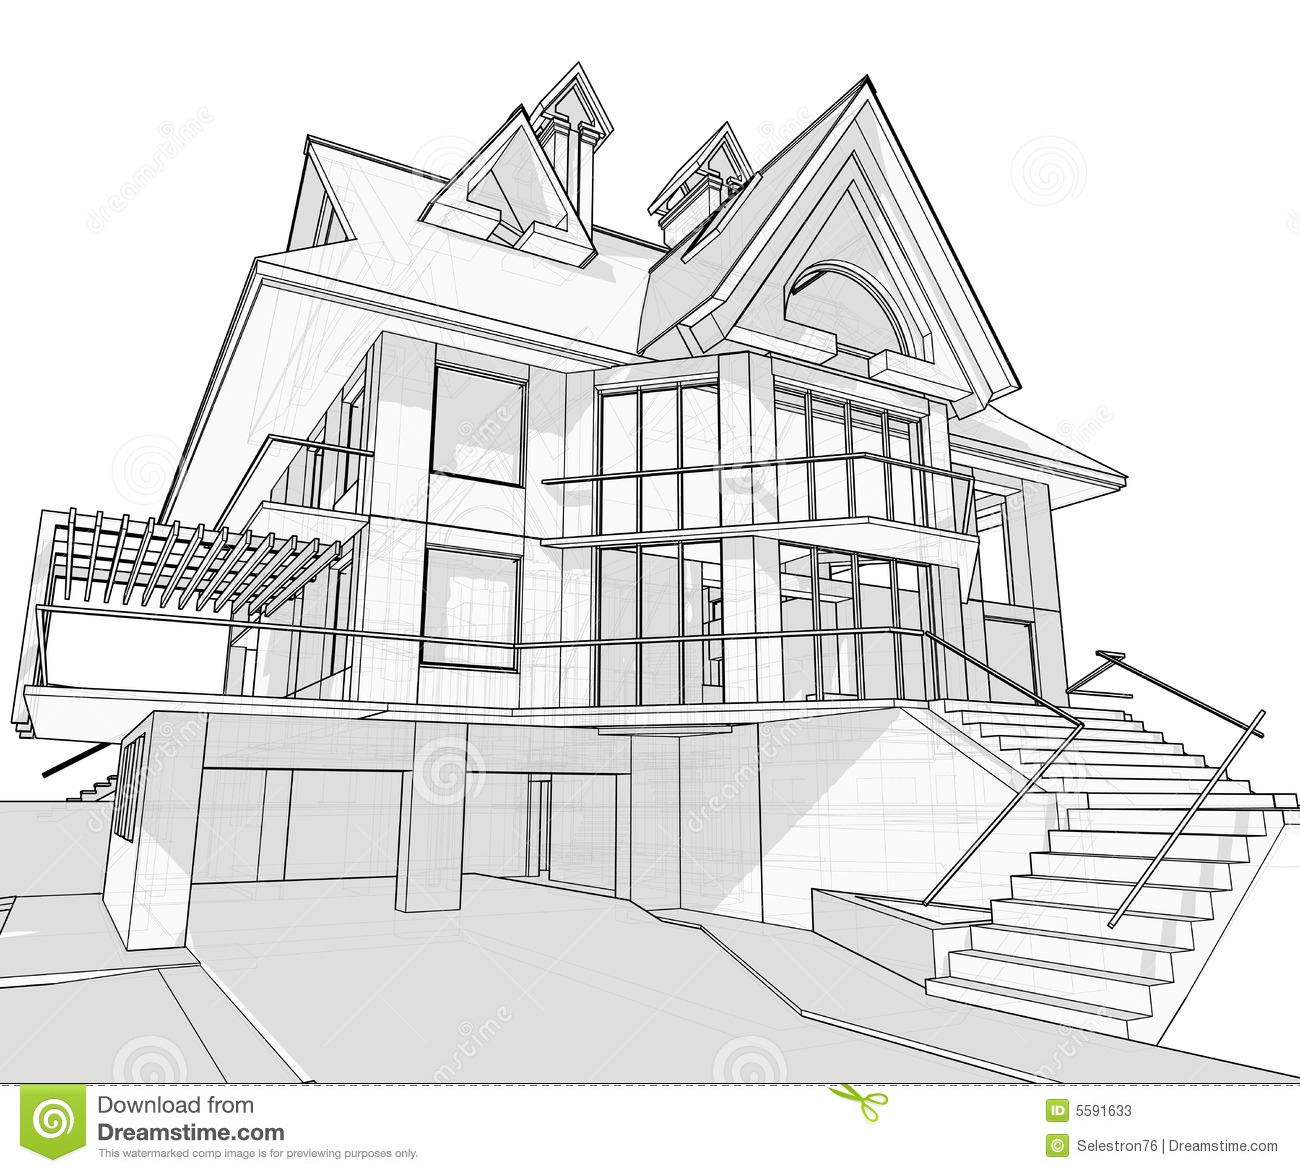 House architecture blueprint stock vector illustration for Where to get blueprints for a house